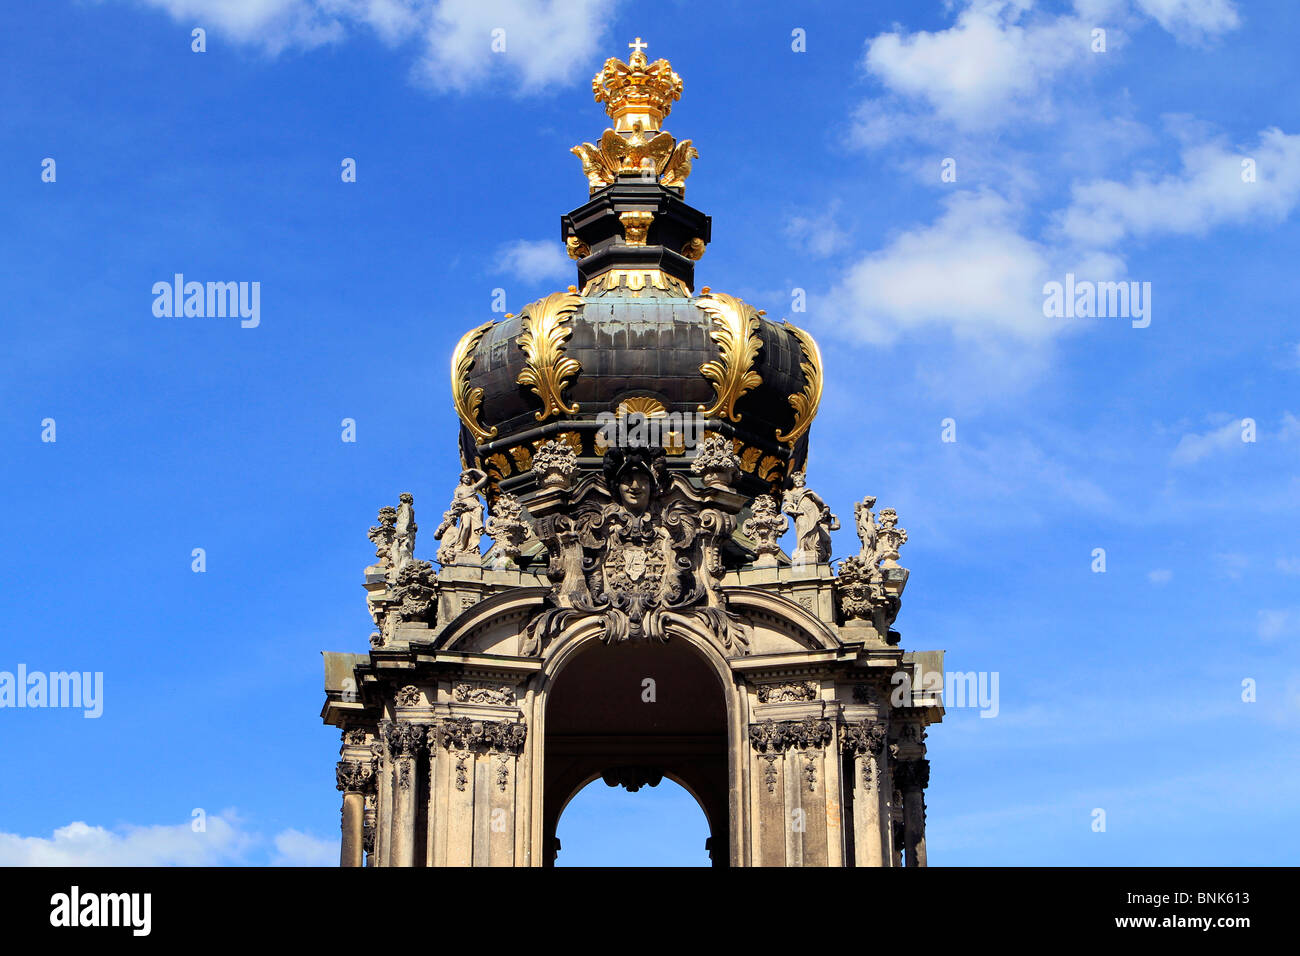 Crown Gate at Zwinger Palace in Dresden, Germany - Stock Image